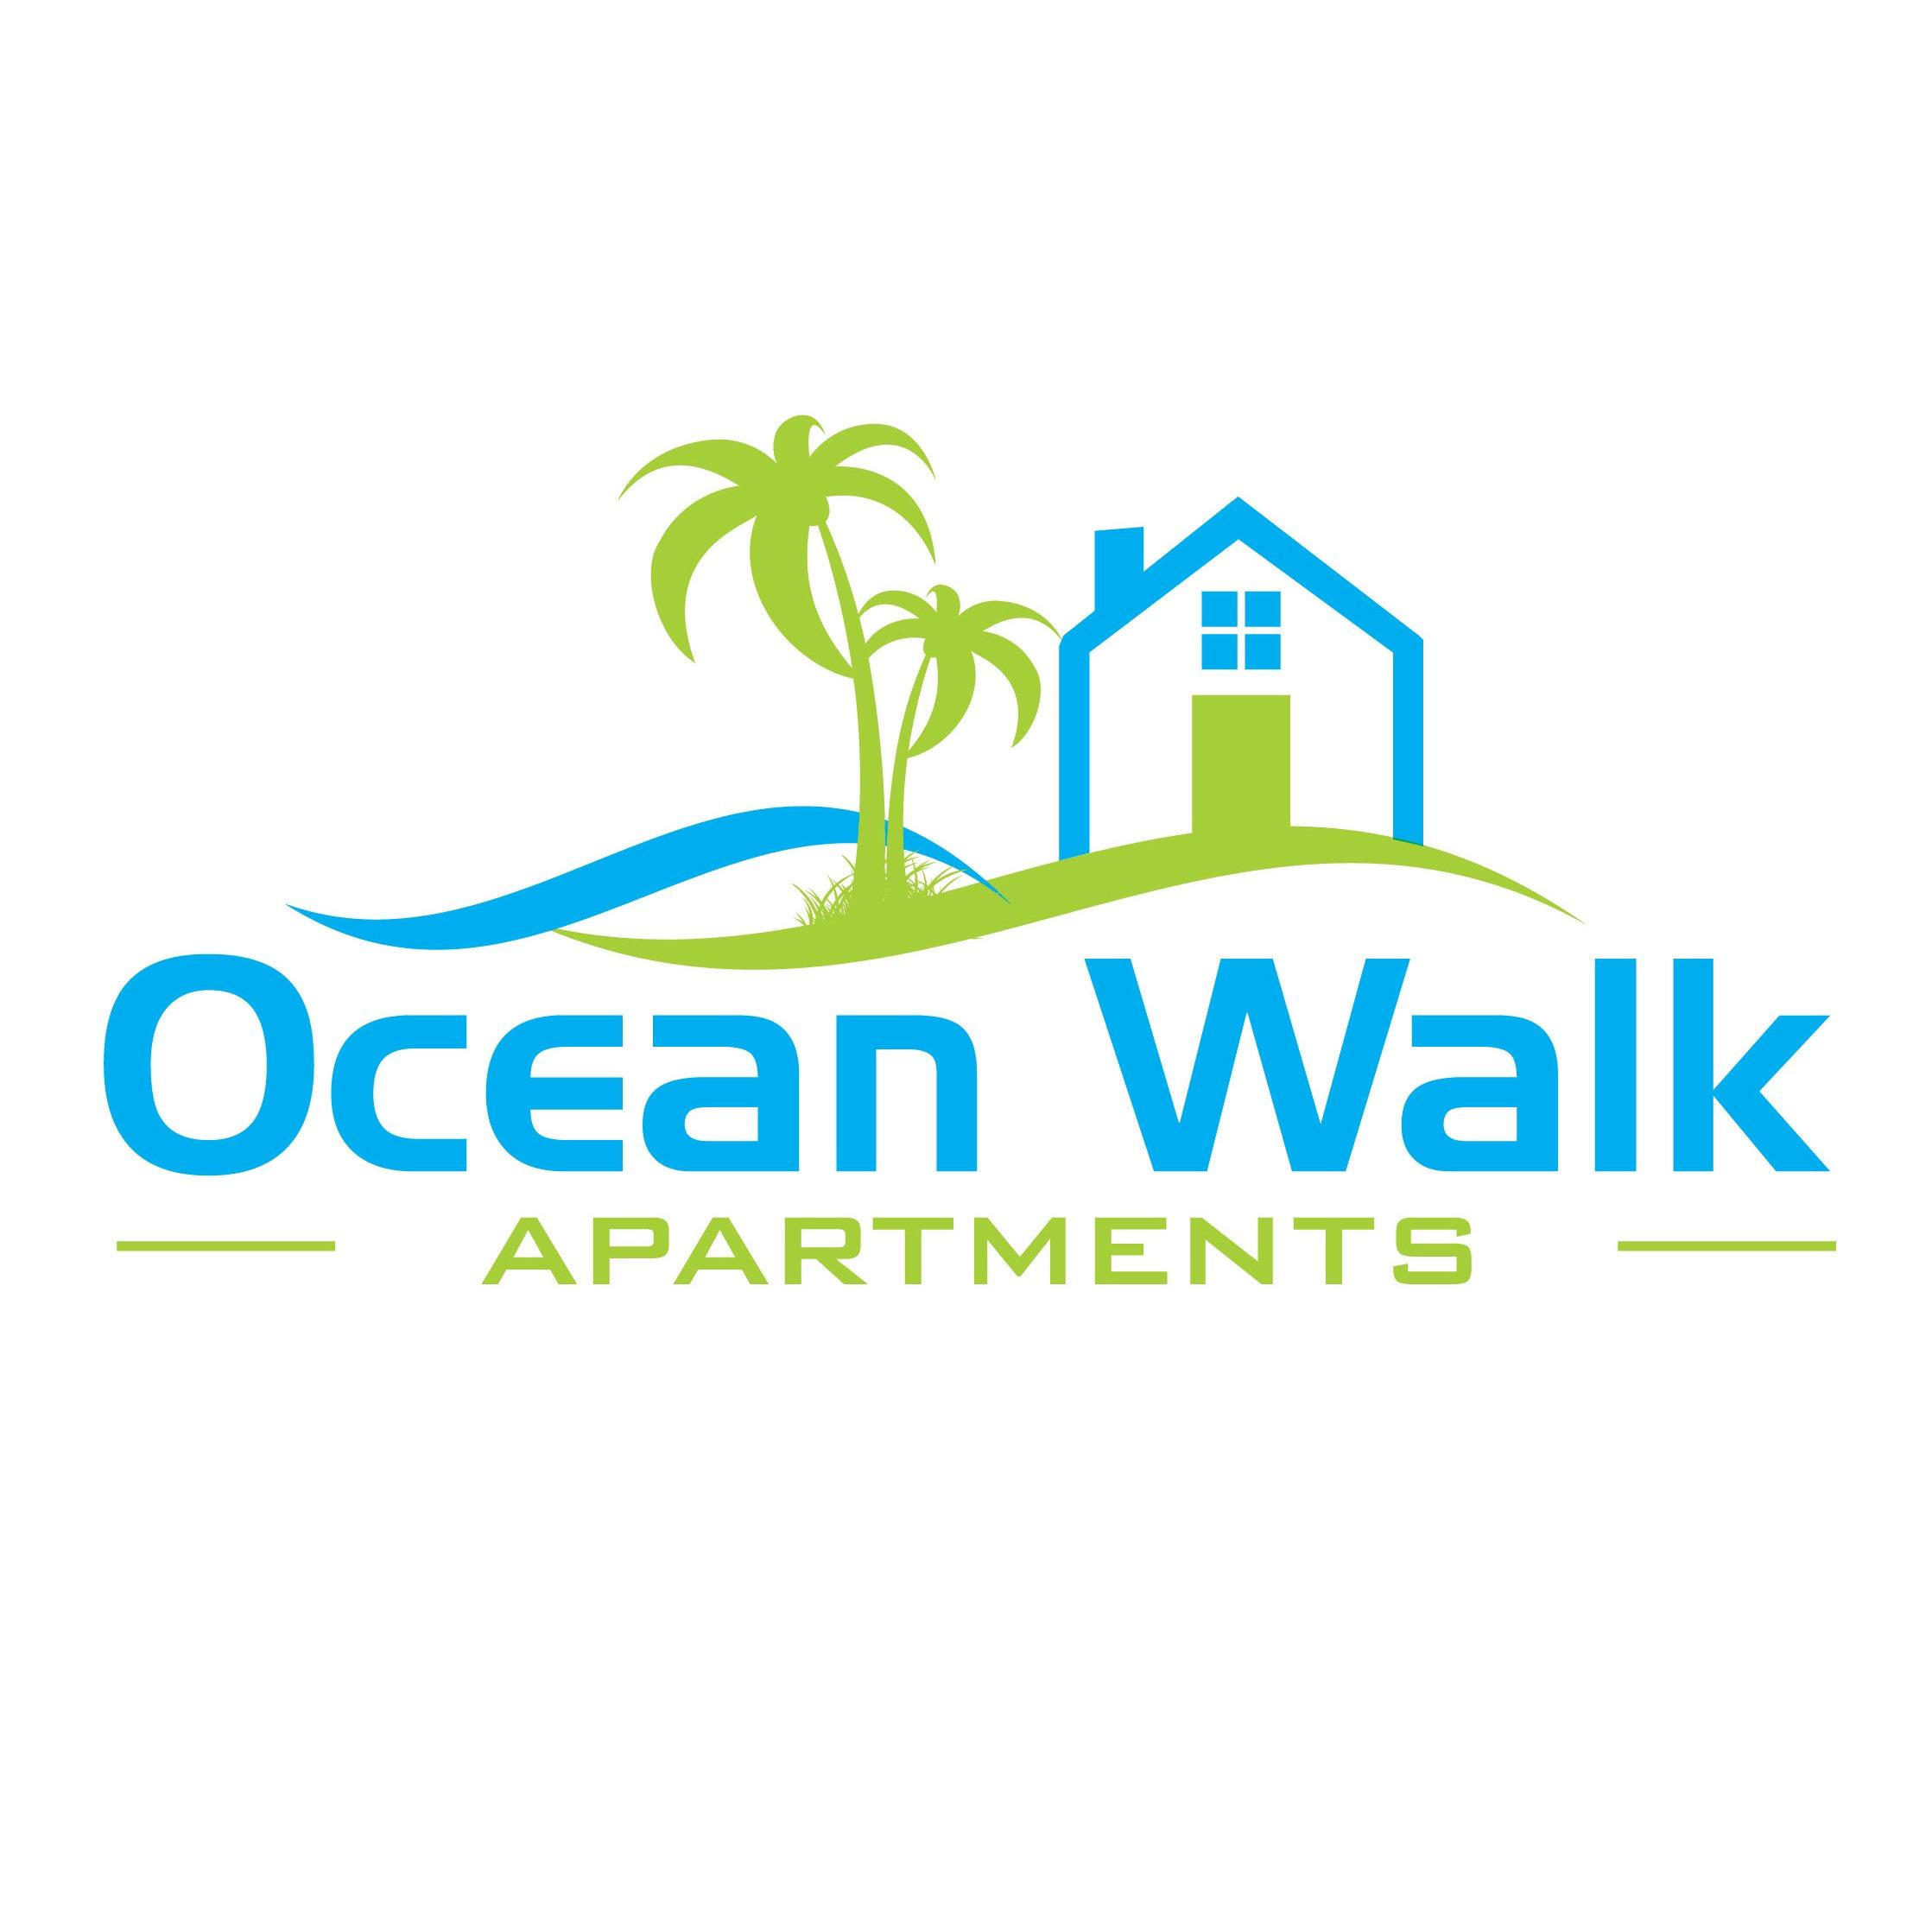 Ocean Walk Apartments